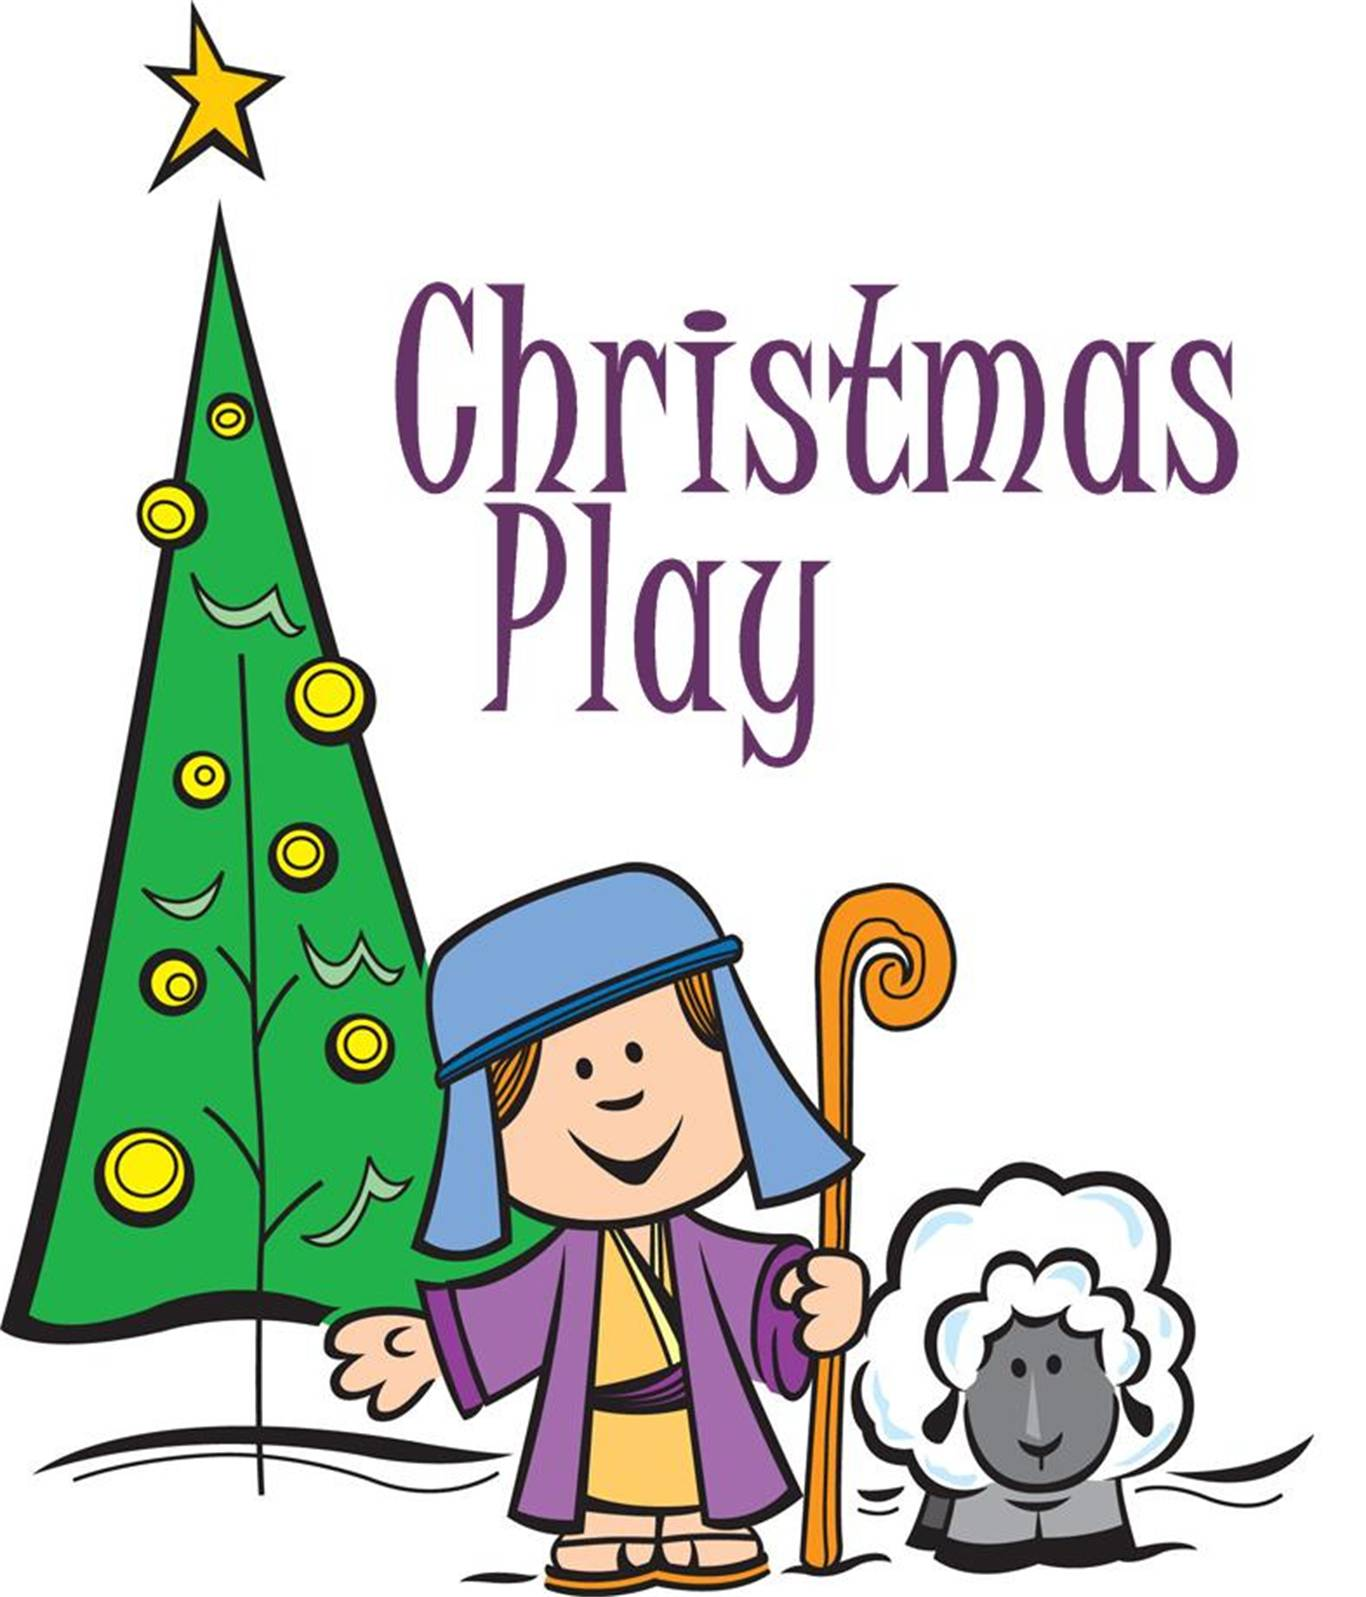 Childrens christmas play clipart